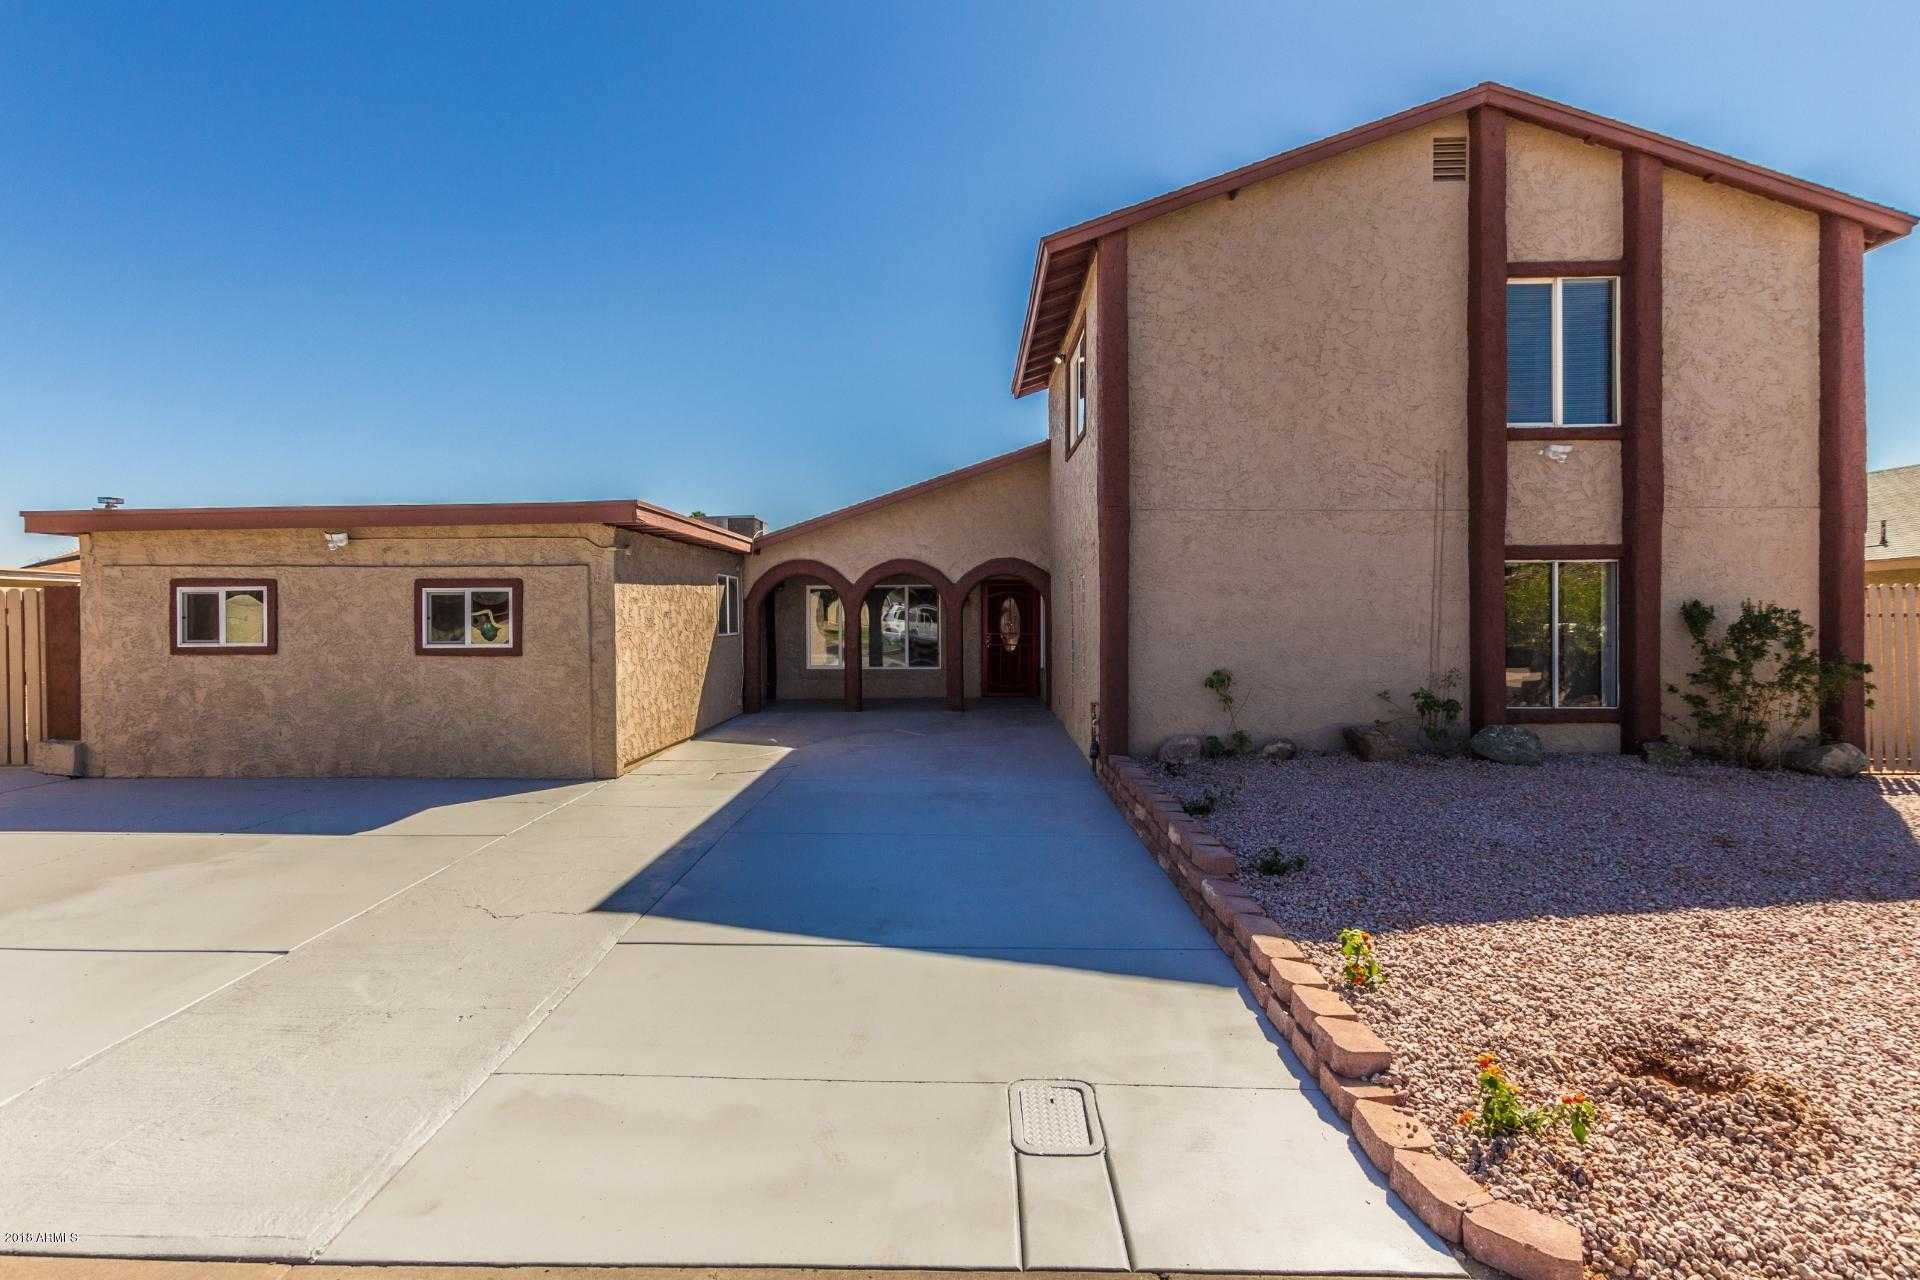 $325,000 - 7Br/5Ba - Home for Sale in Pace West, Glendale